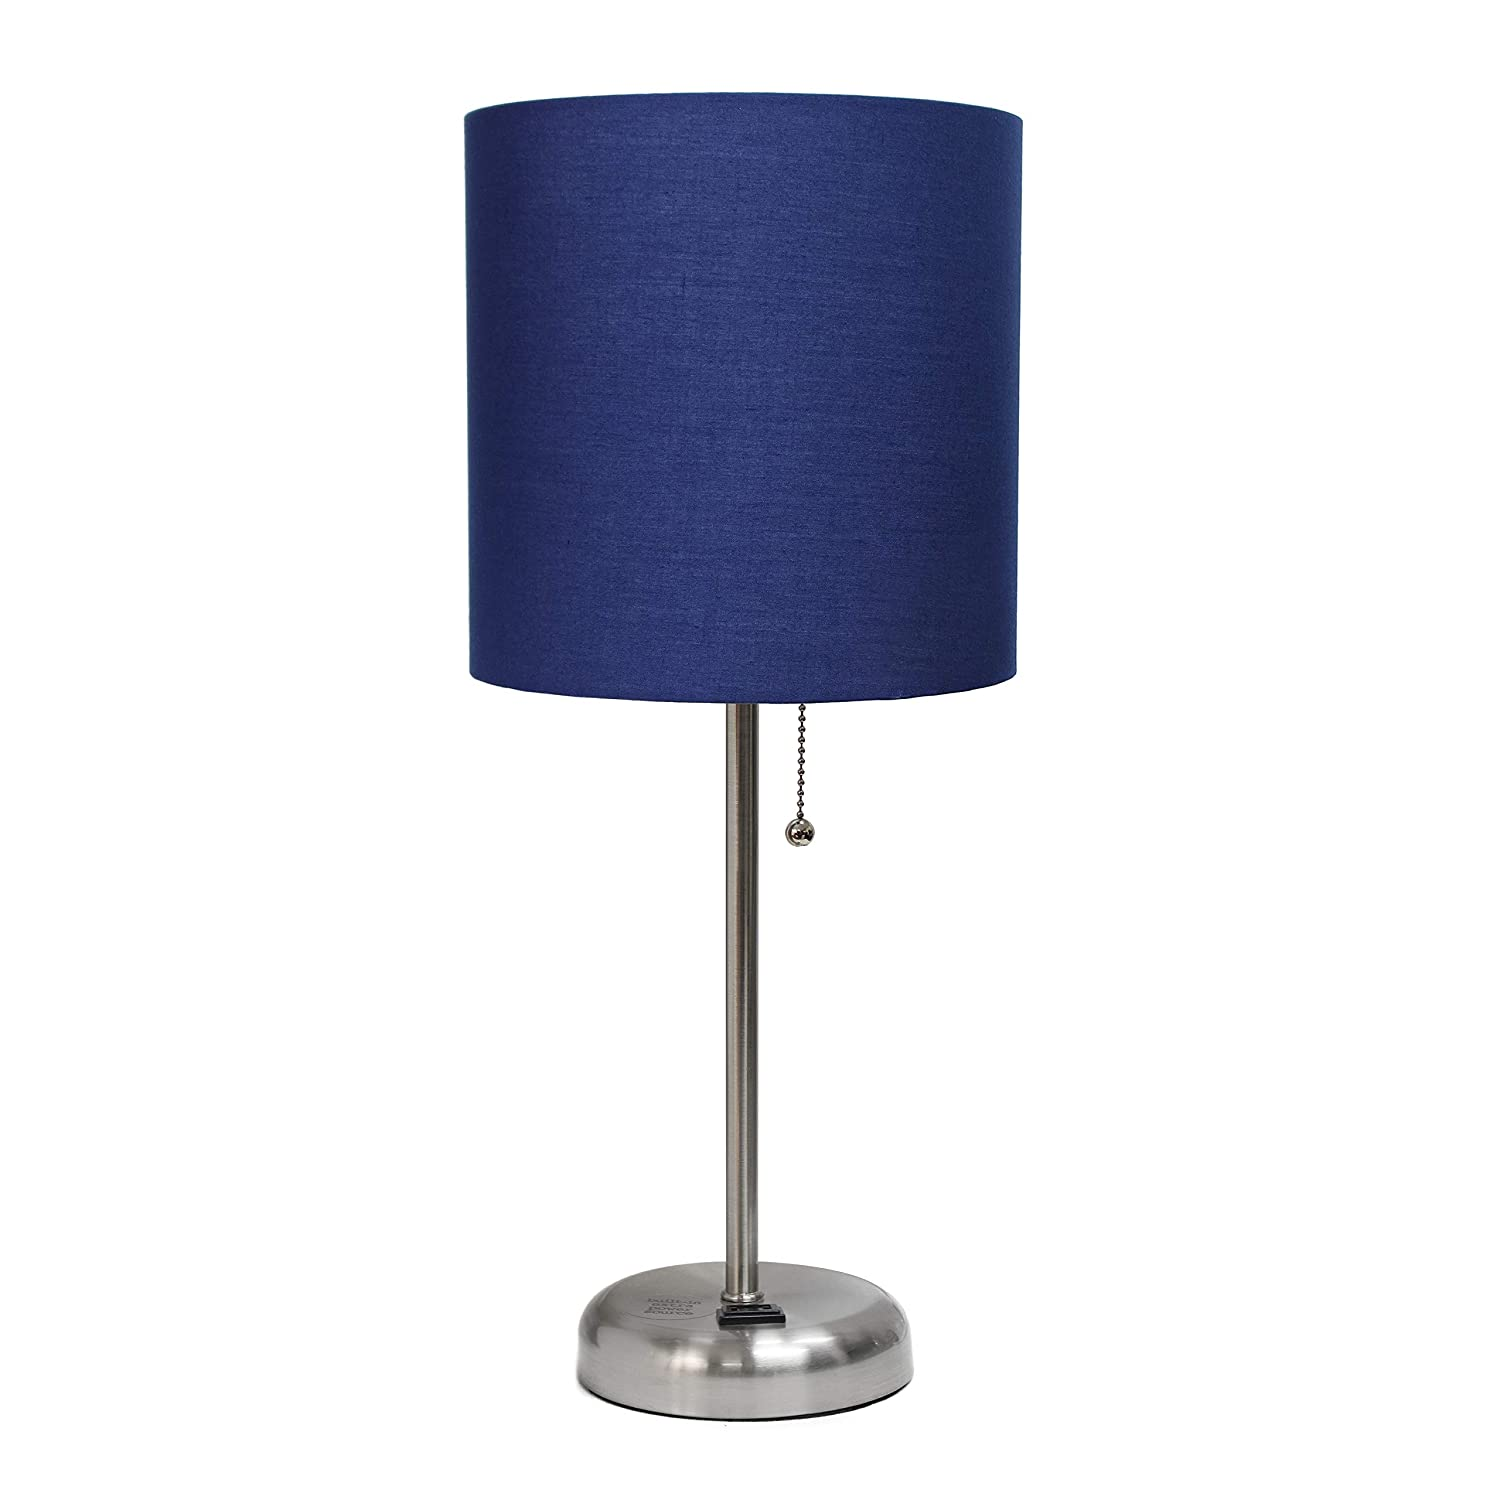 Limelights LT2024-NAV Stick Lamp with Charging Outlet and Fabric Shade, Navy